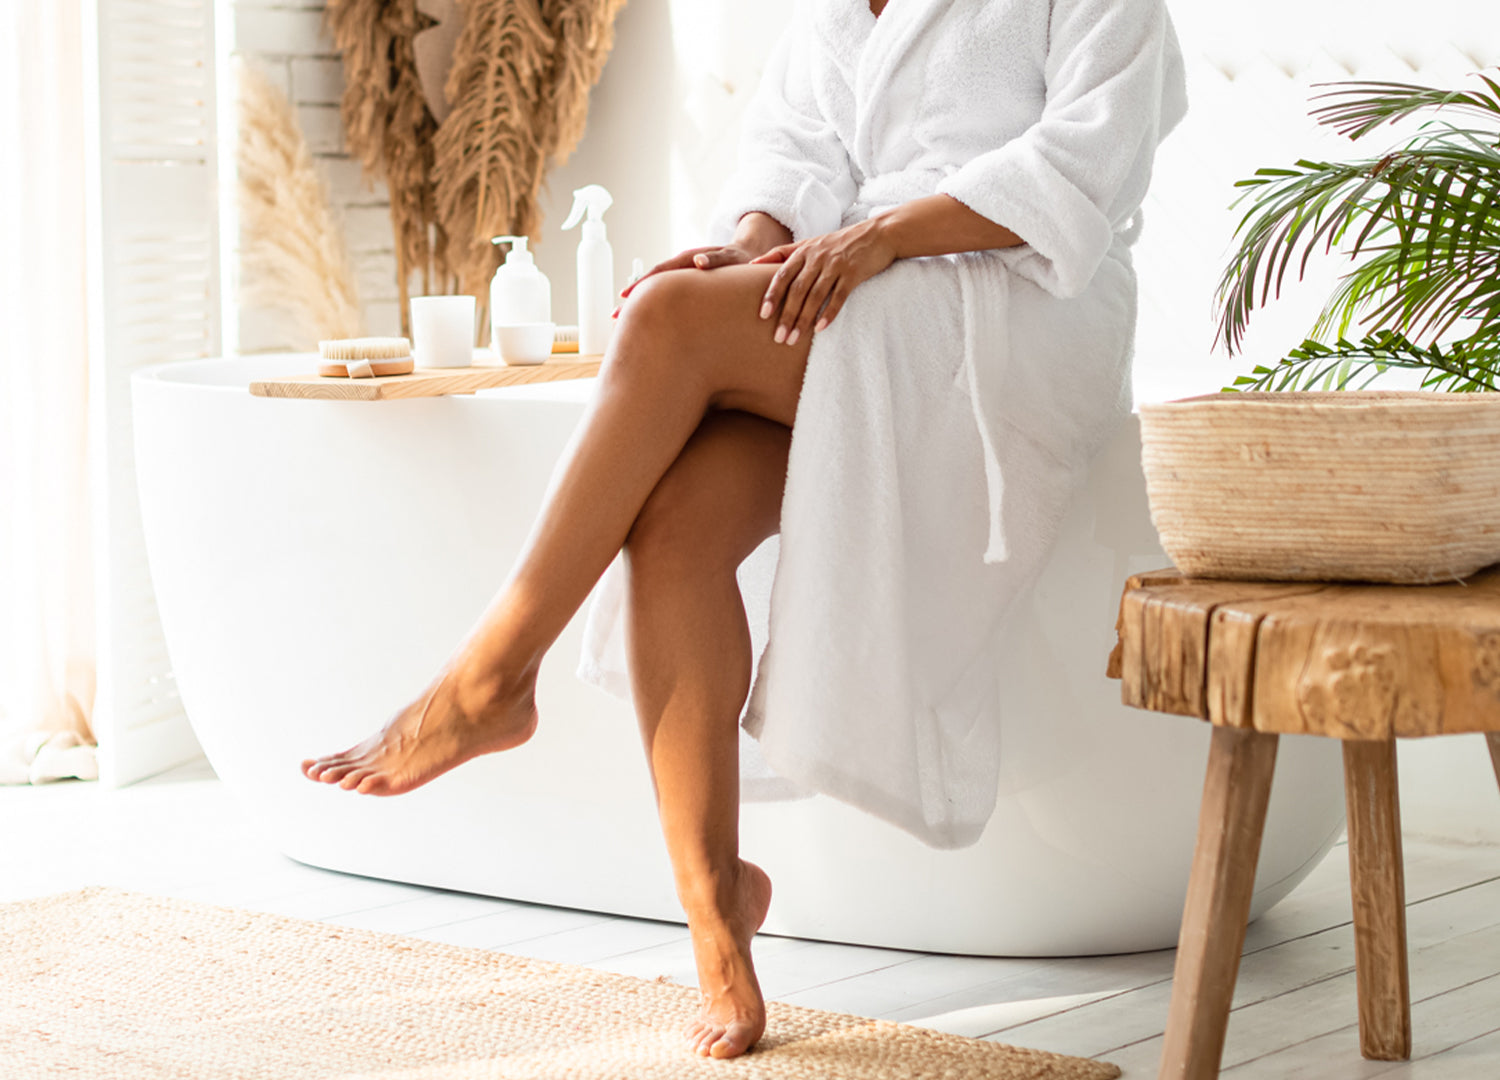 Smooth legs ready for summer after sugar wax hair removal